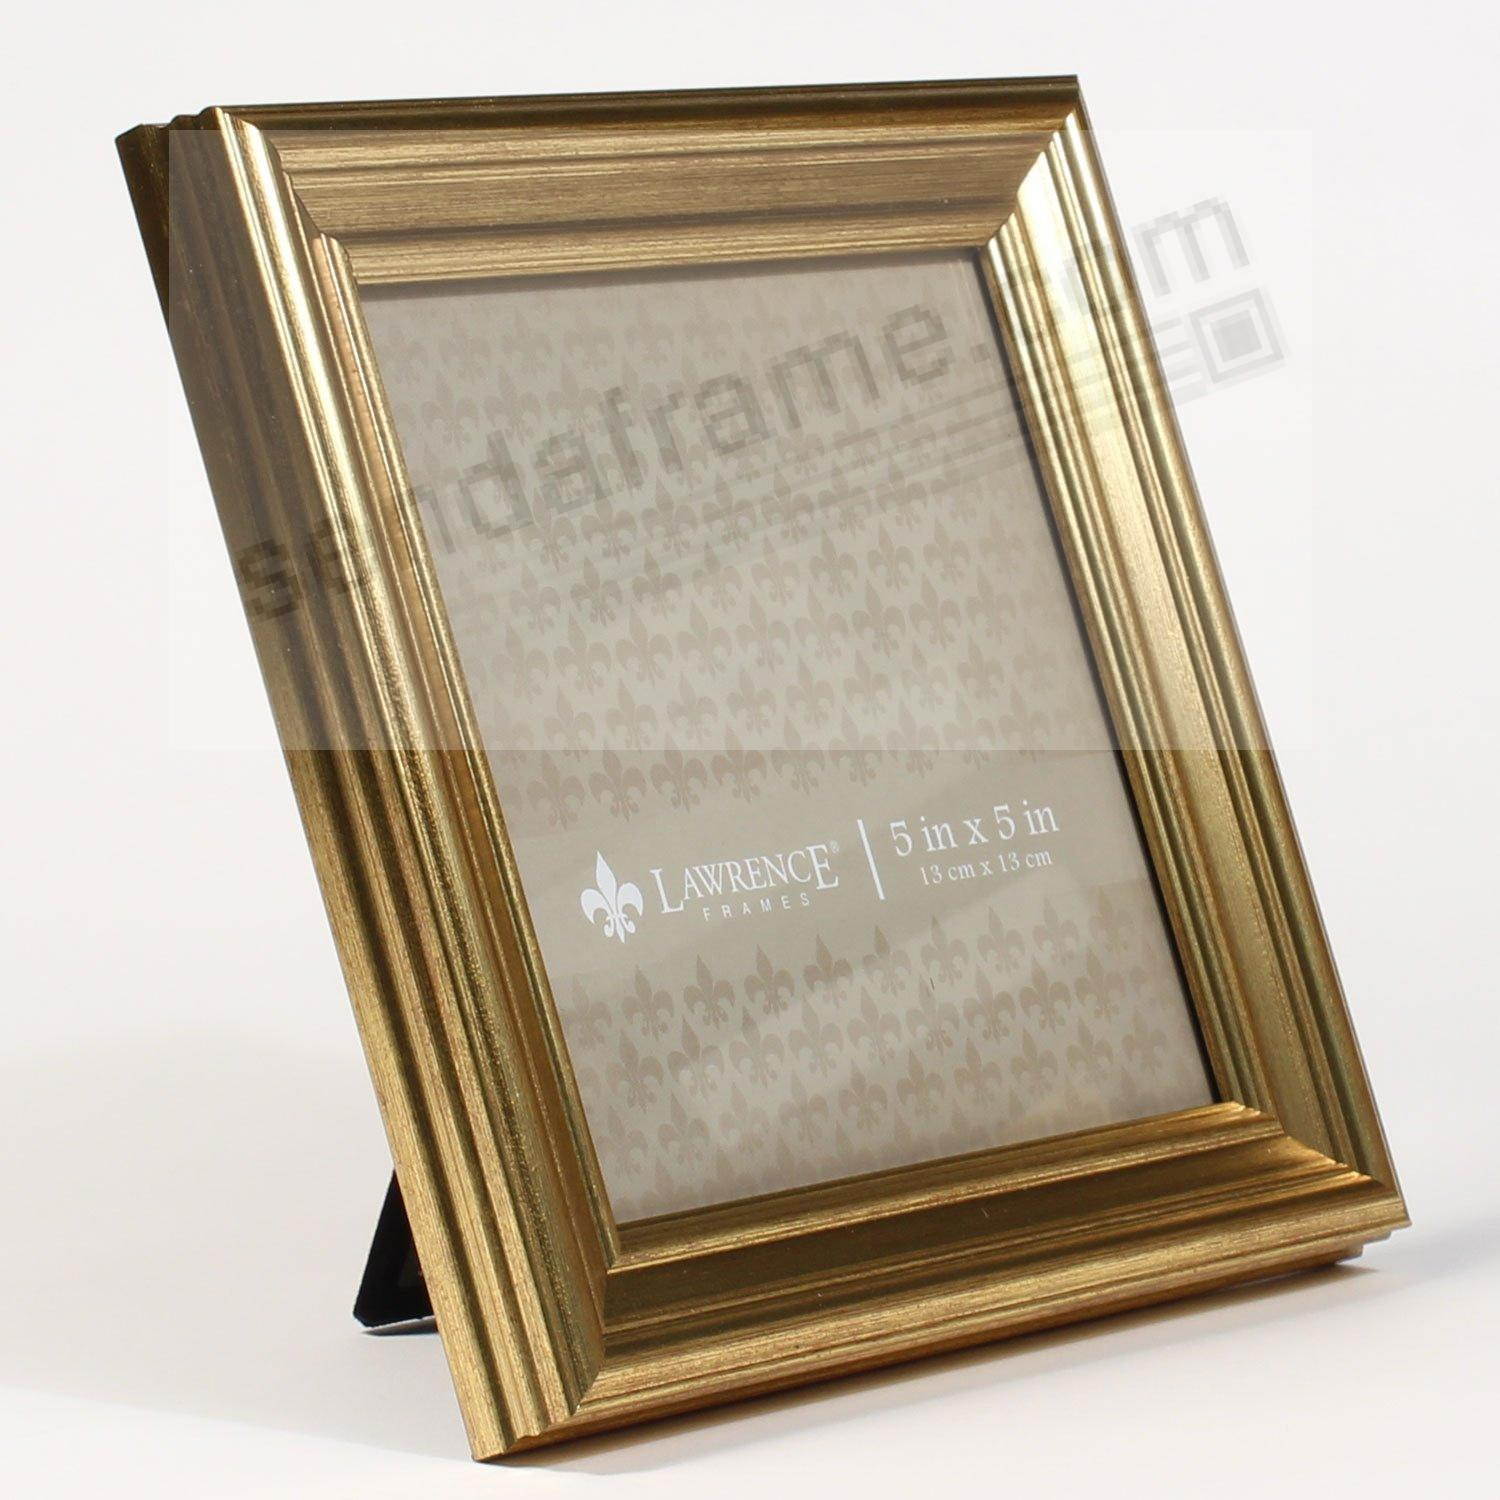 SUTTER Burnished Gold composite-wood 5x5 frame by Lawrence ...